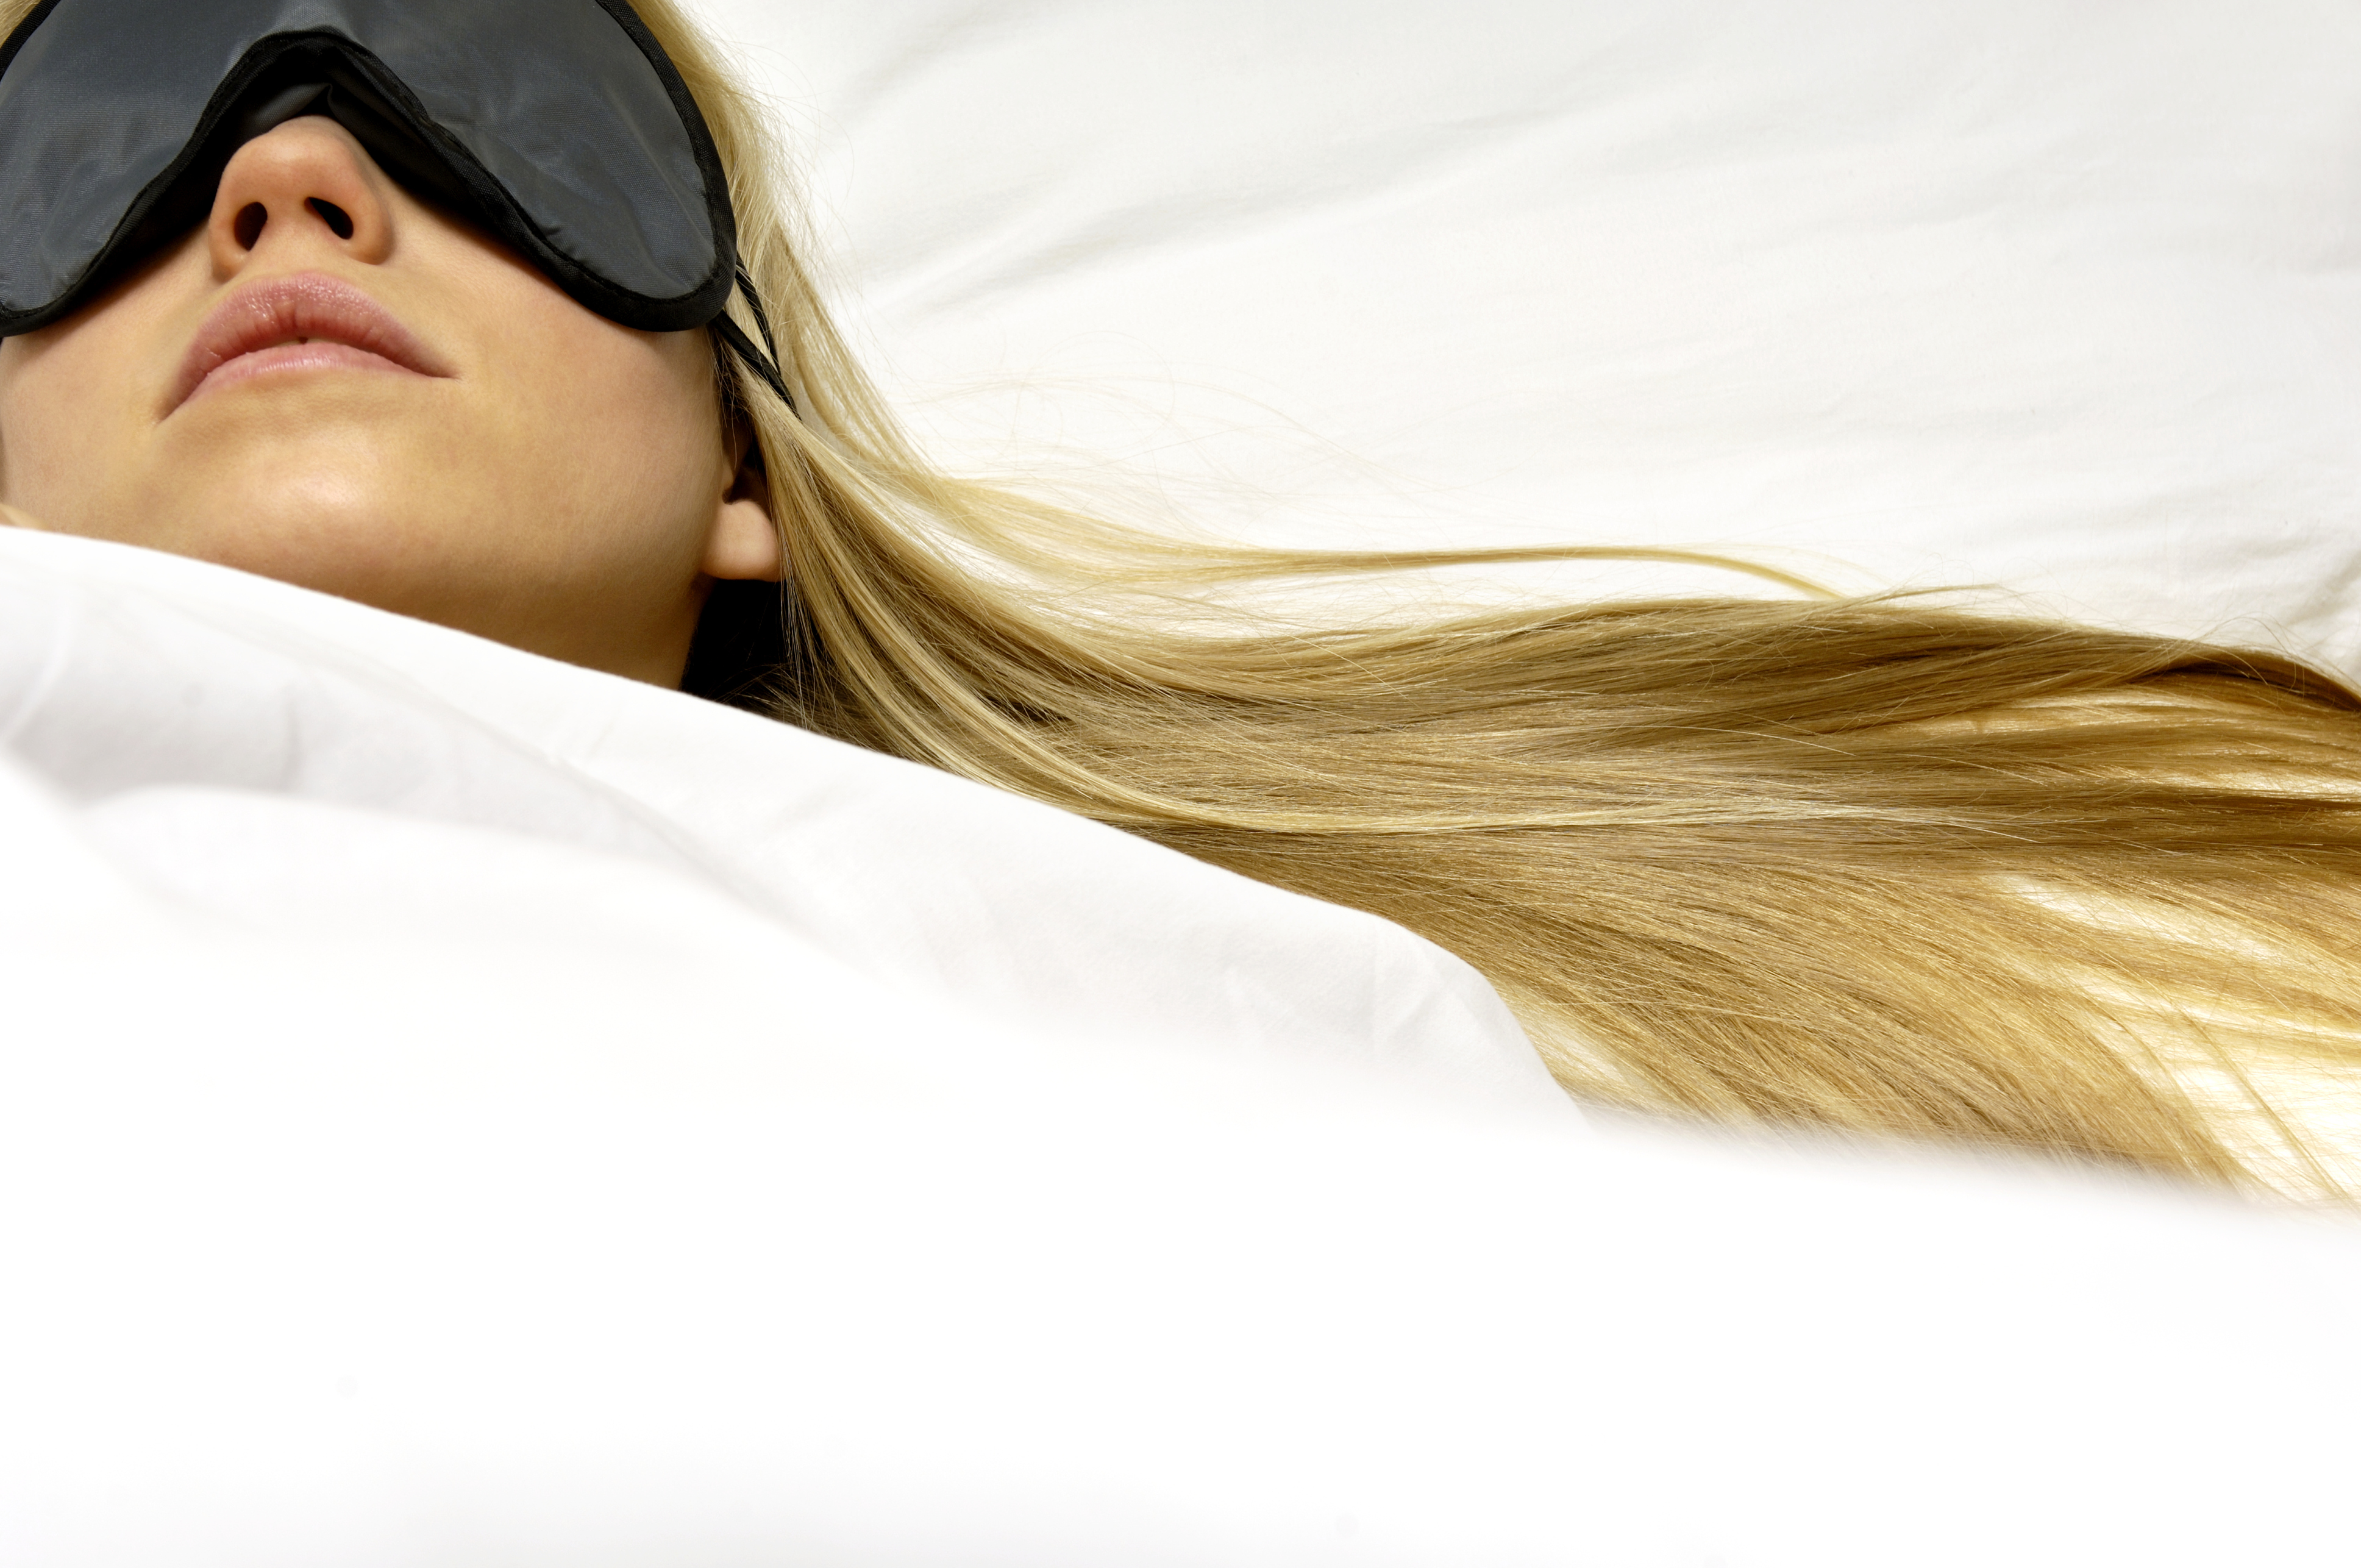 Young woman sleeping in bed, wearing sleep mask, close-up